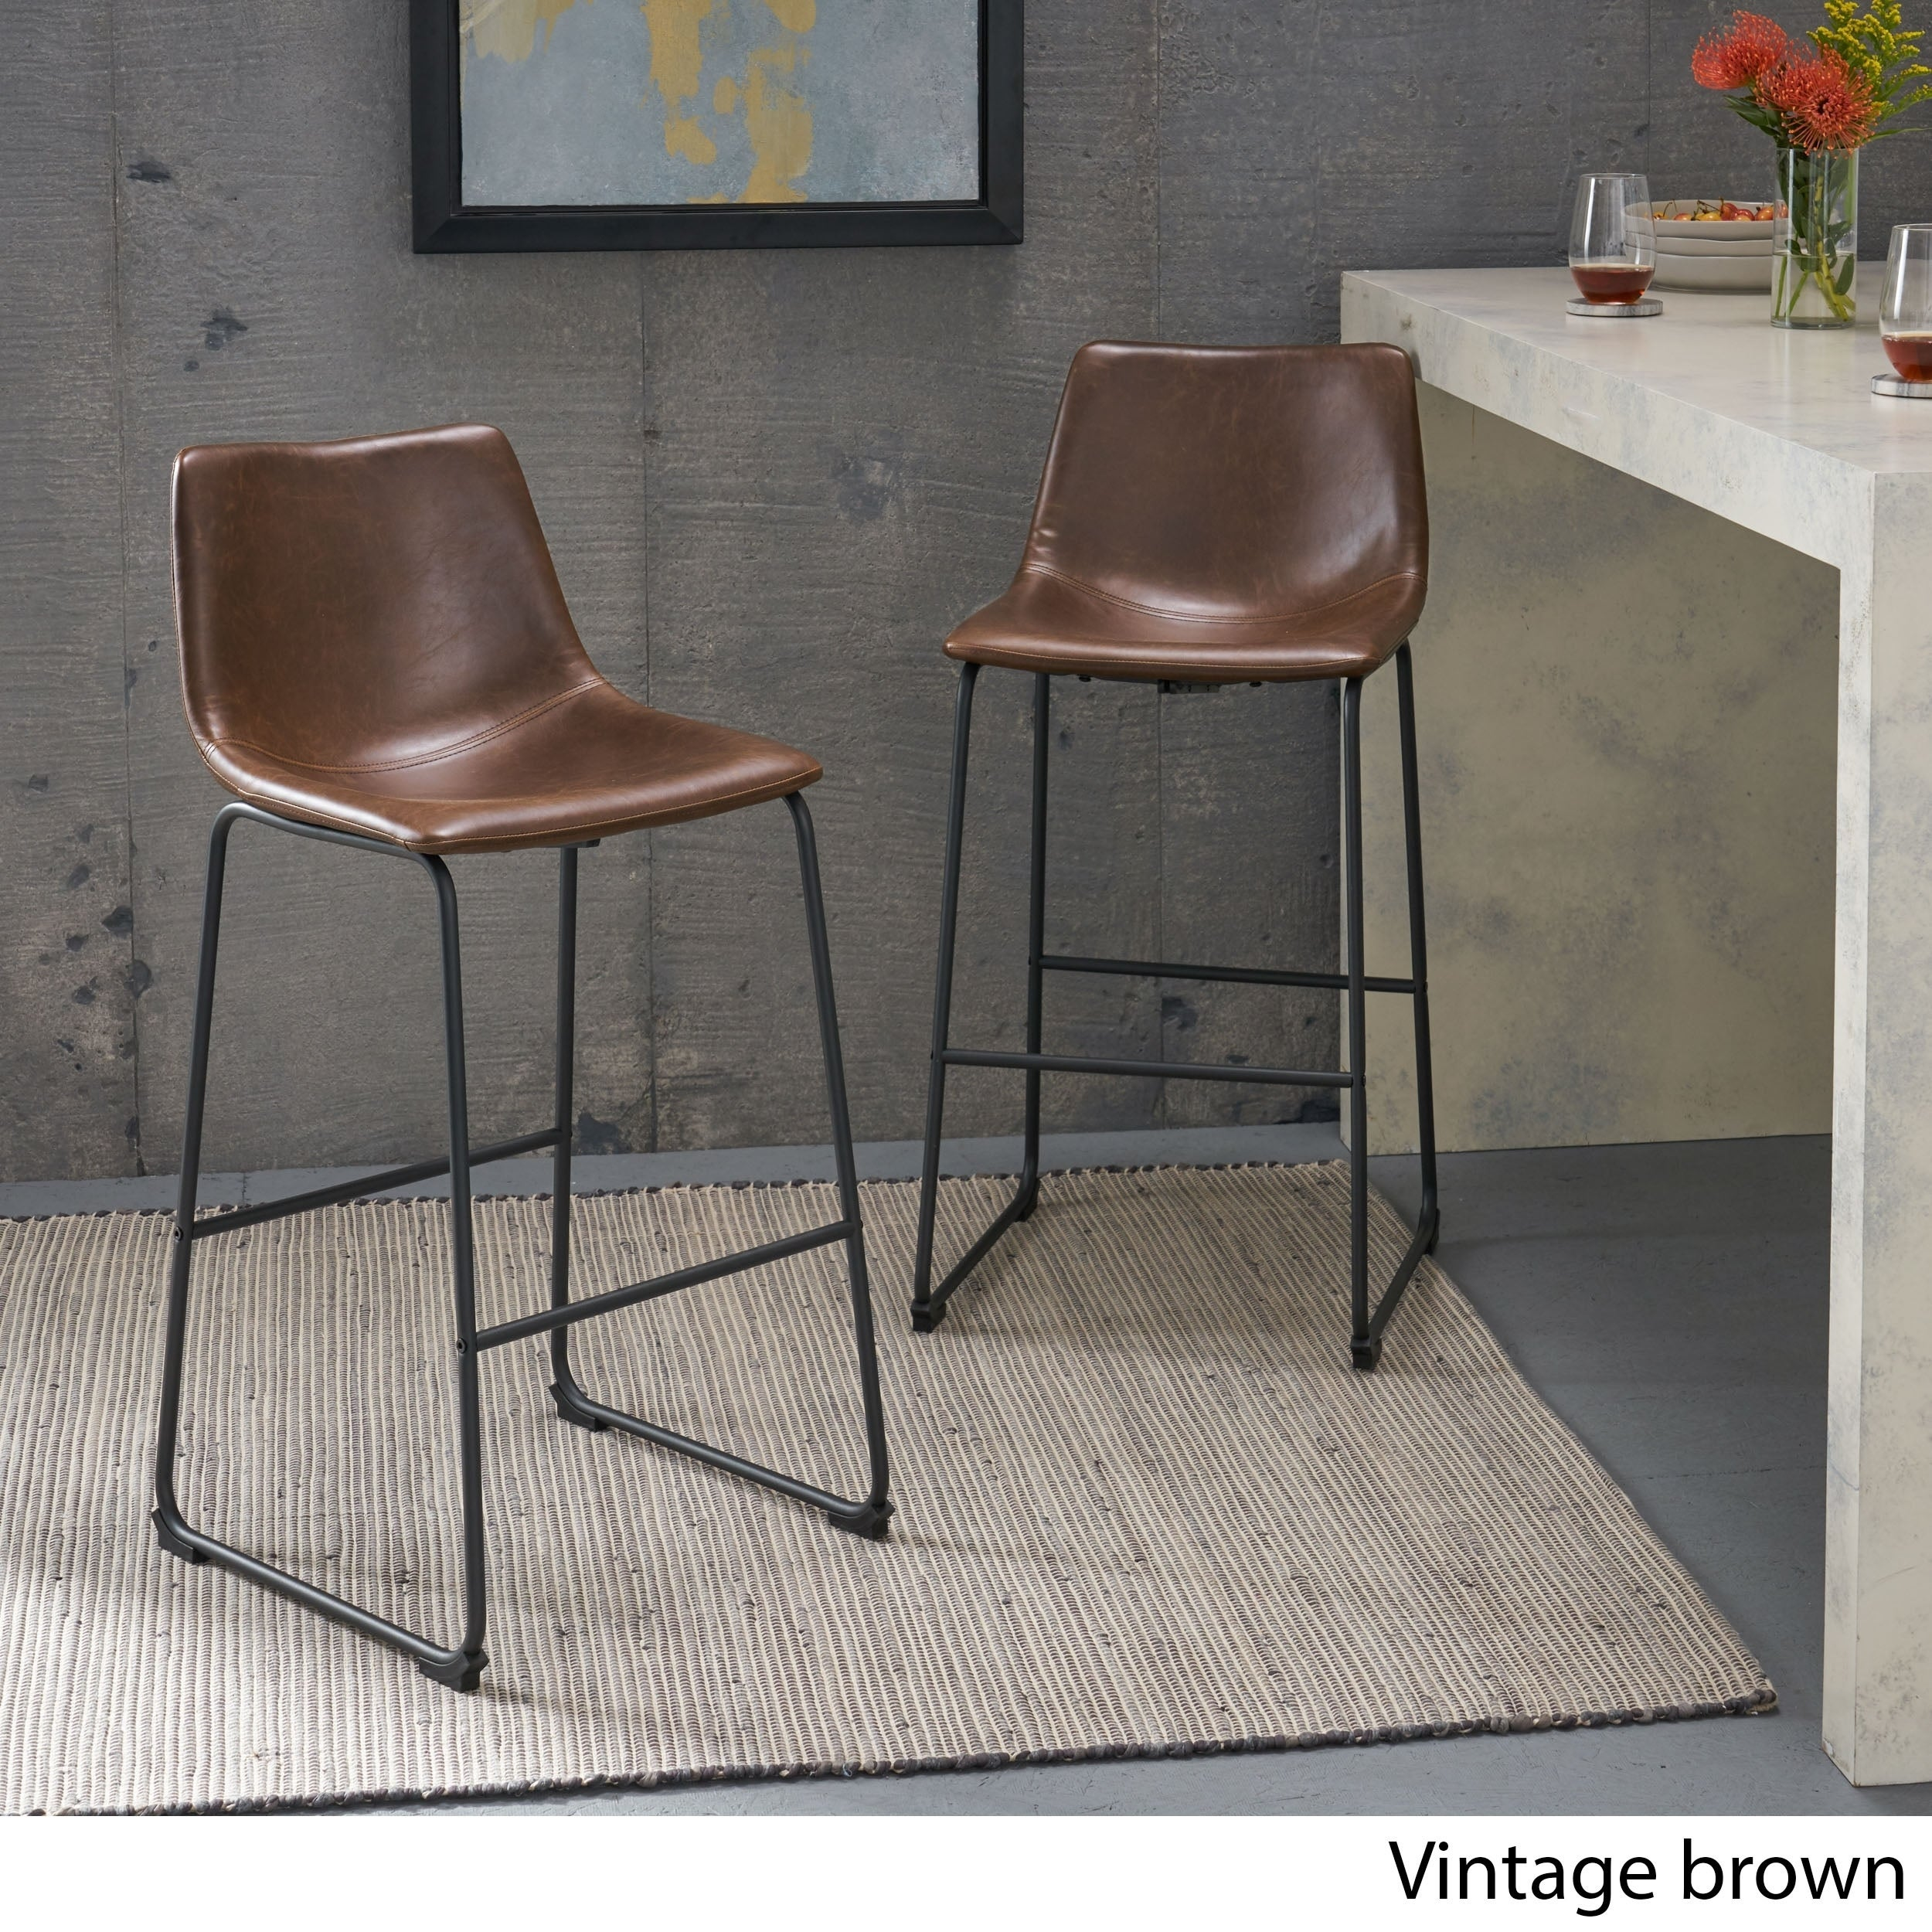 Prime Carbon Loft Diggory 30 Inch Faux Leather Barstool Set Of 2 Onthecornerstone Fun Painted Chair Ideas Images Onthecornerstoneorg